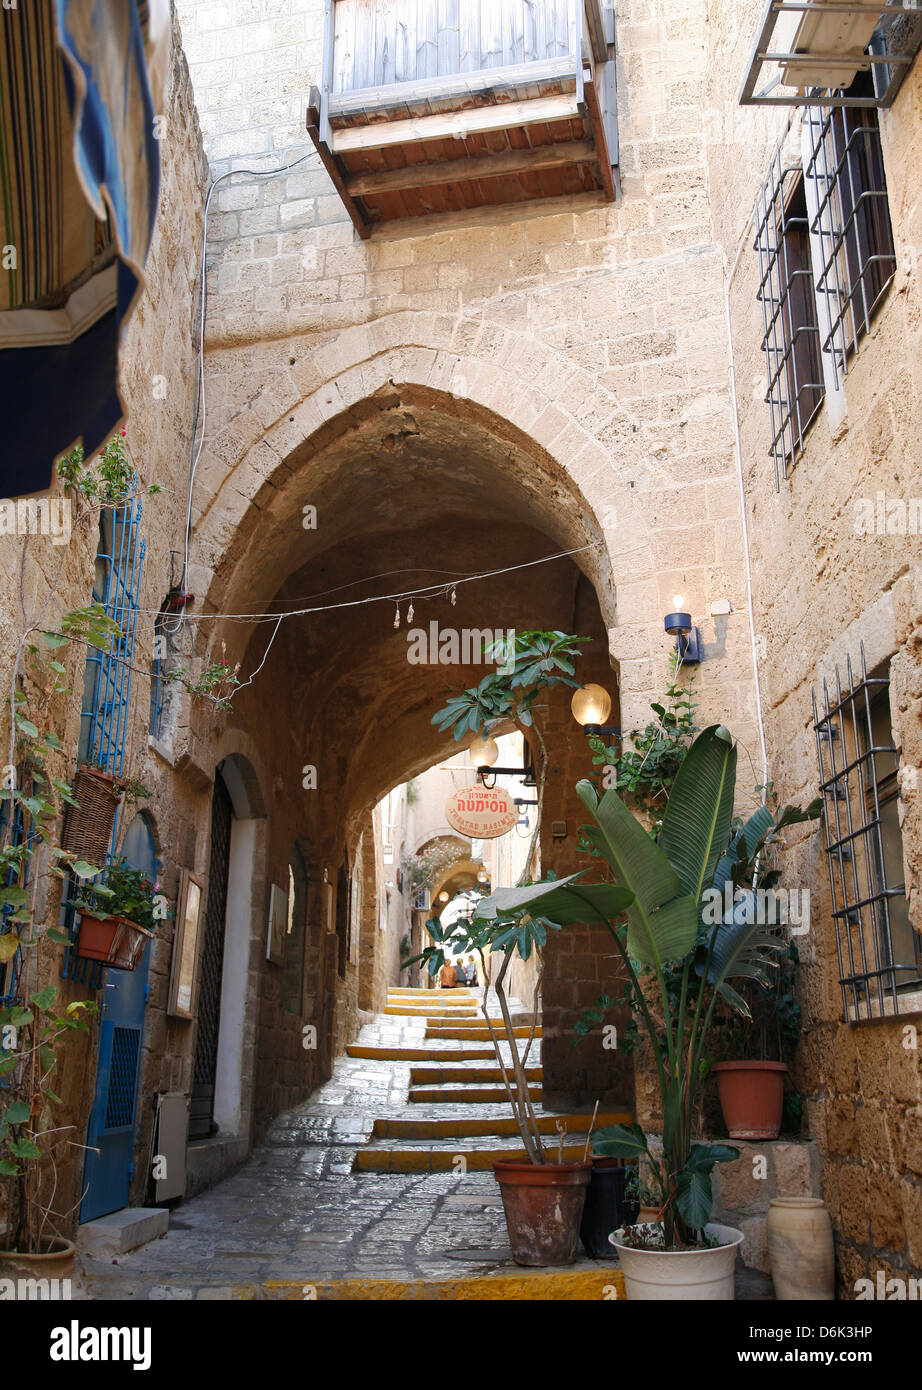 Alleys in the Old Jaffa, Tel Aviv, Israel, Middle East - Stock Image